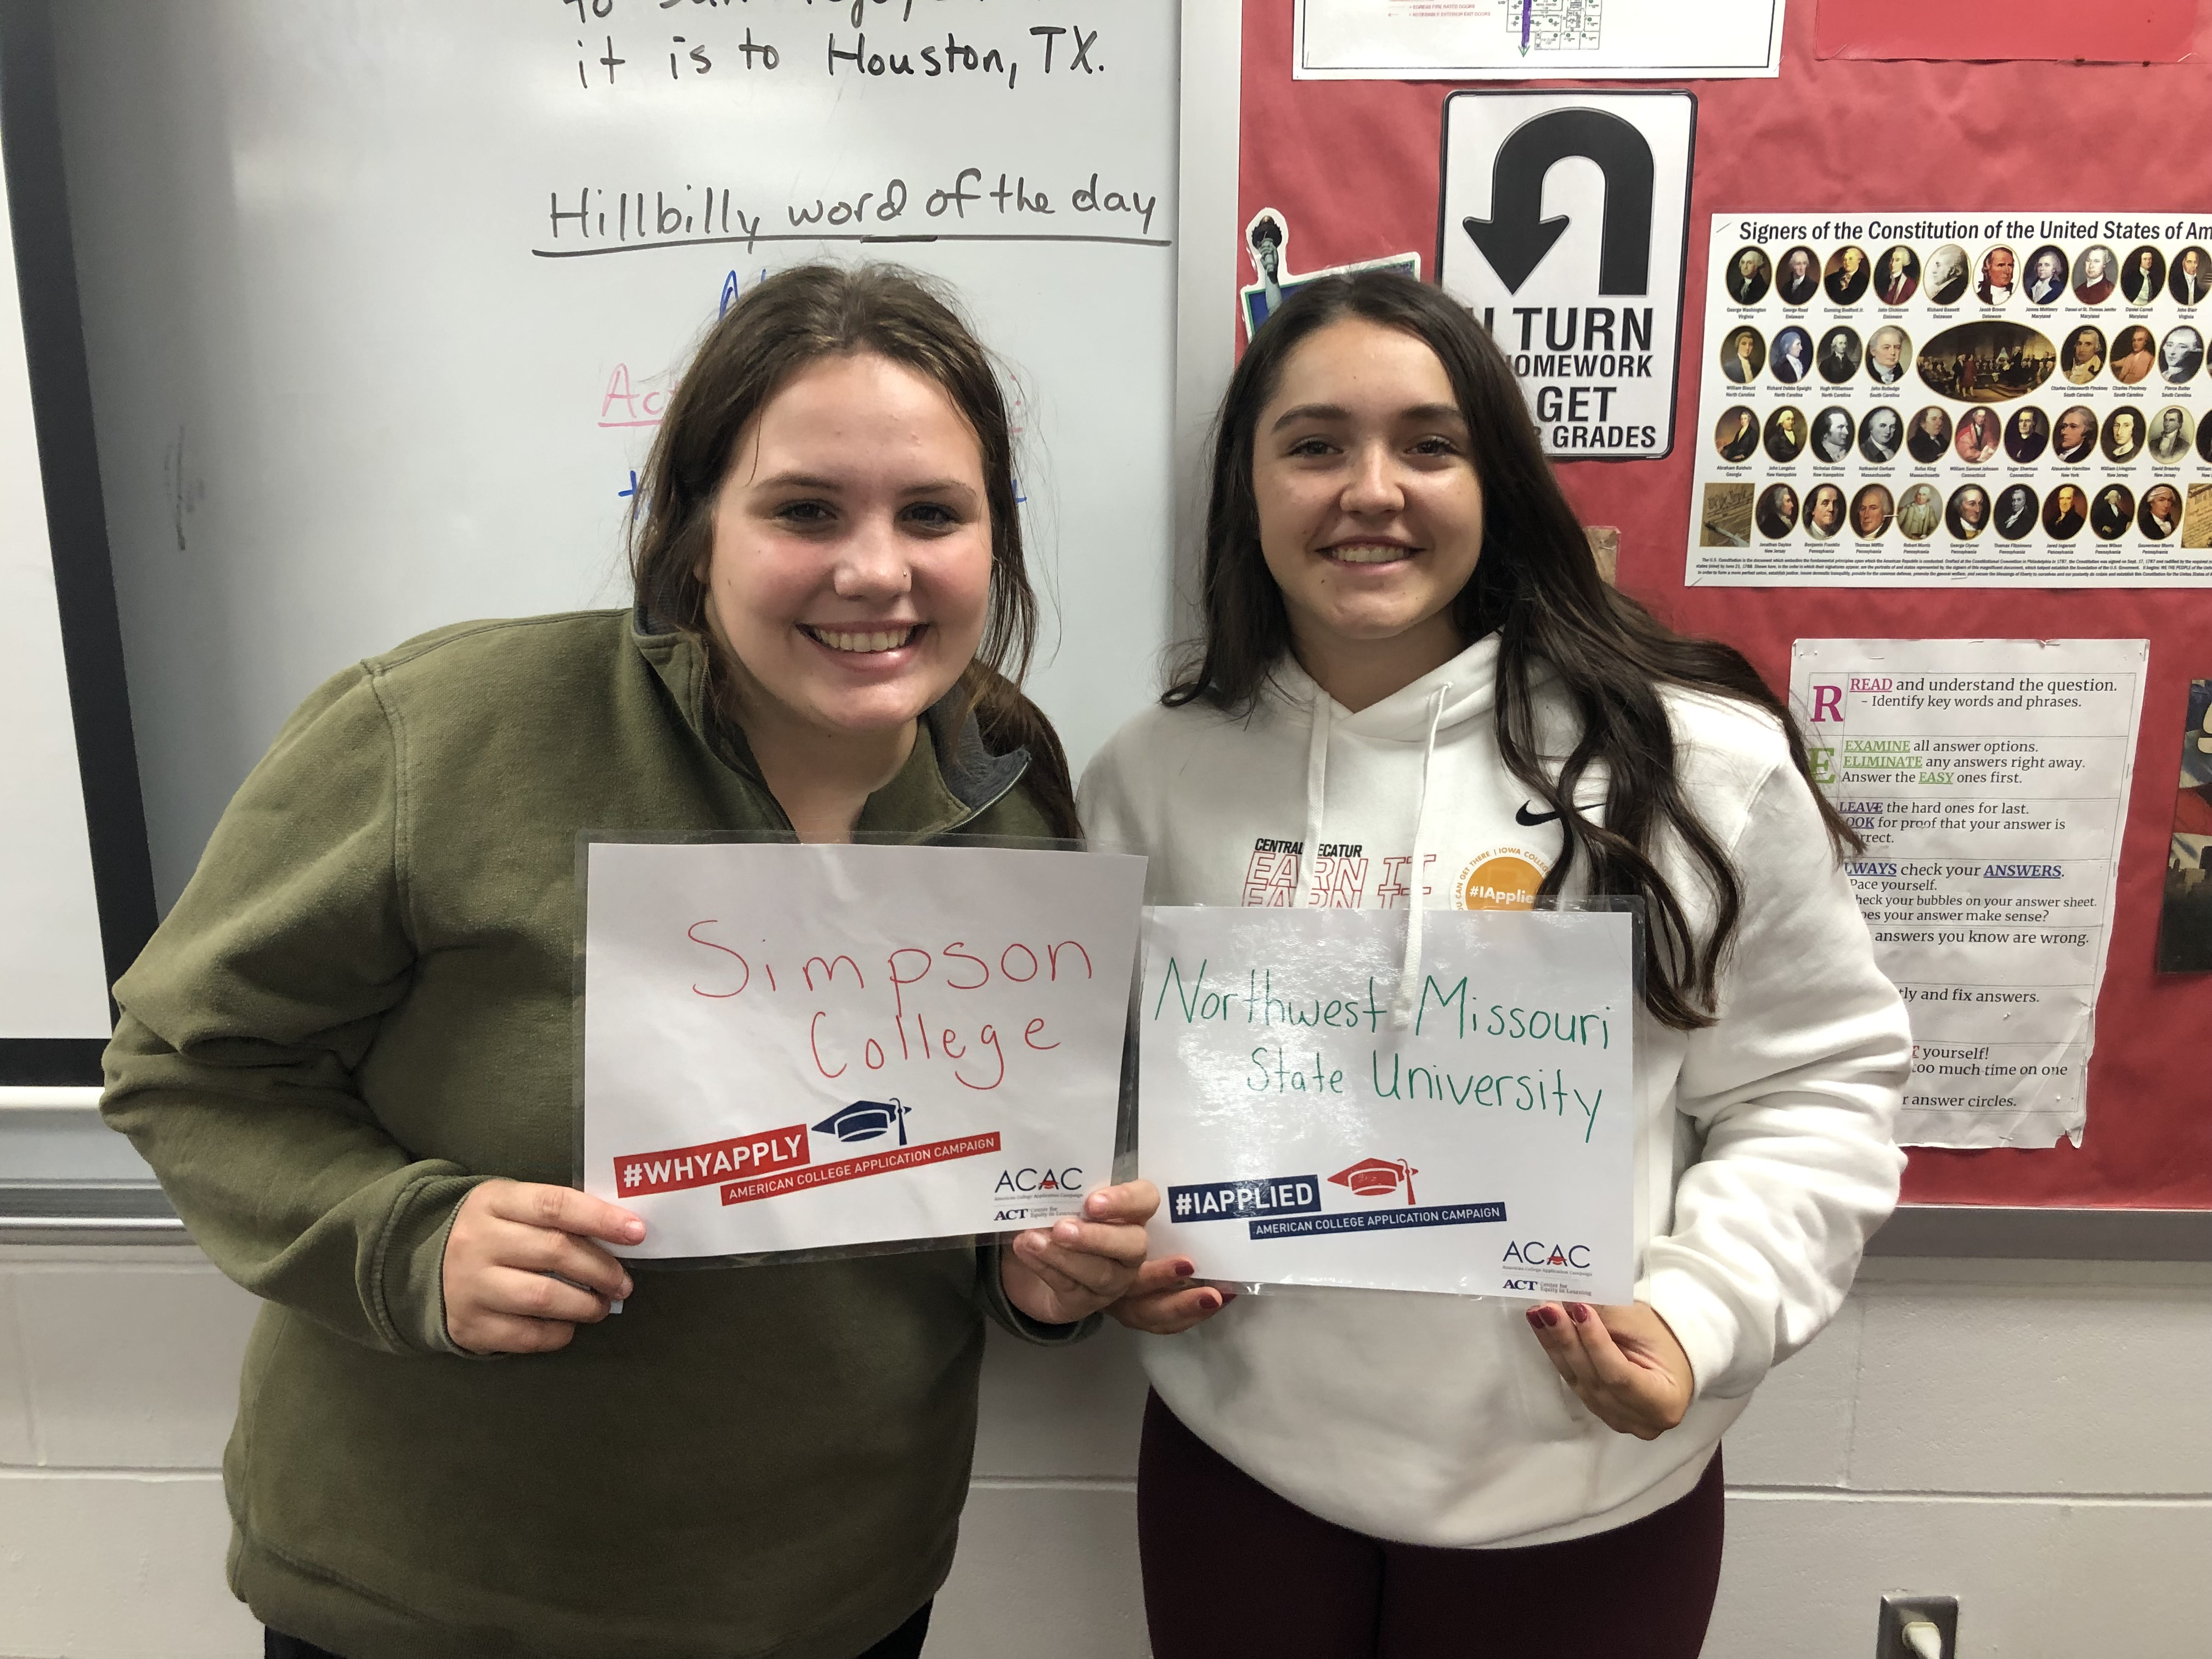 Cadence Clark '22 and Mara Dykes '22 shared their school choices for #WhyApply Day. Clark has chosen Simpson College and Dykes has chosen Northwest Missouri State University.